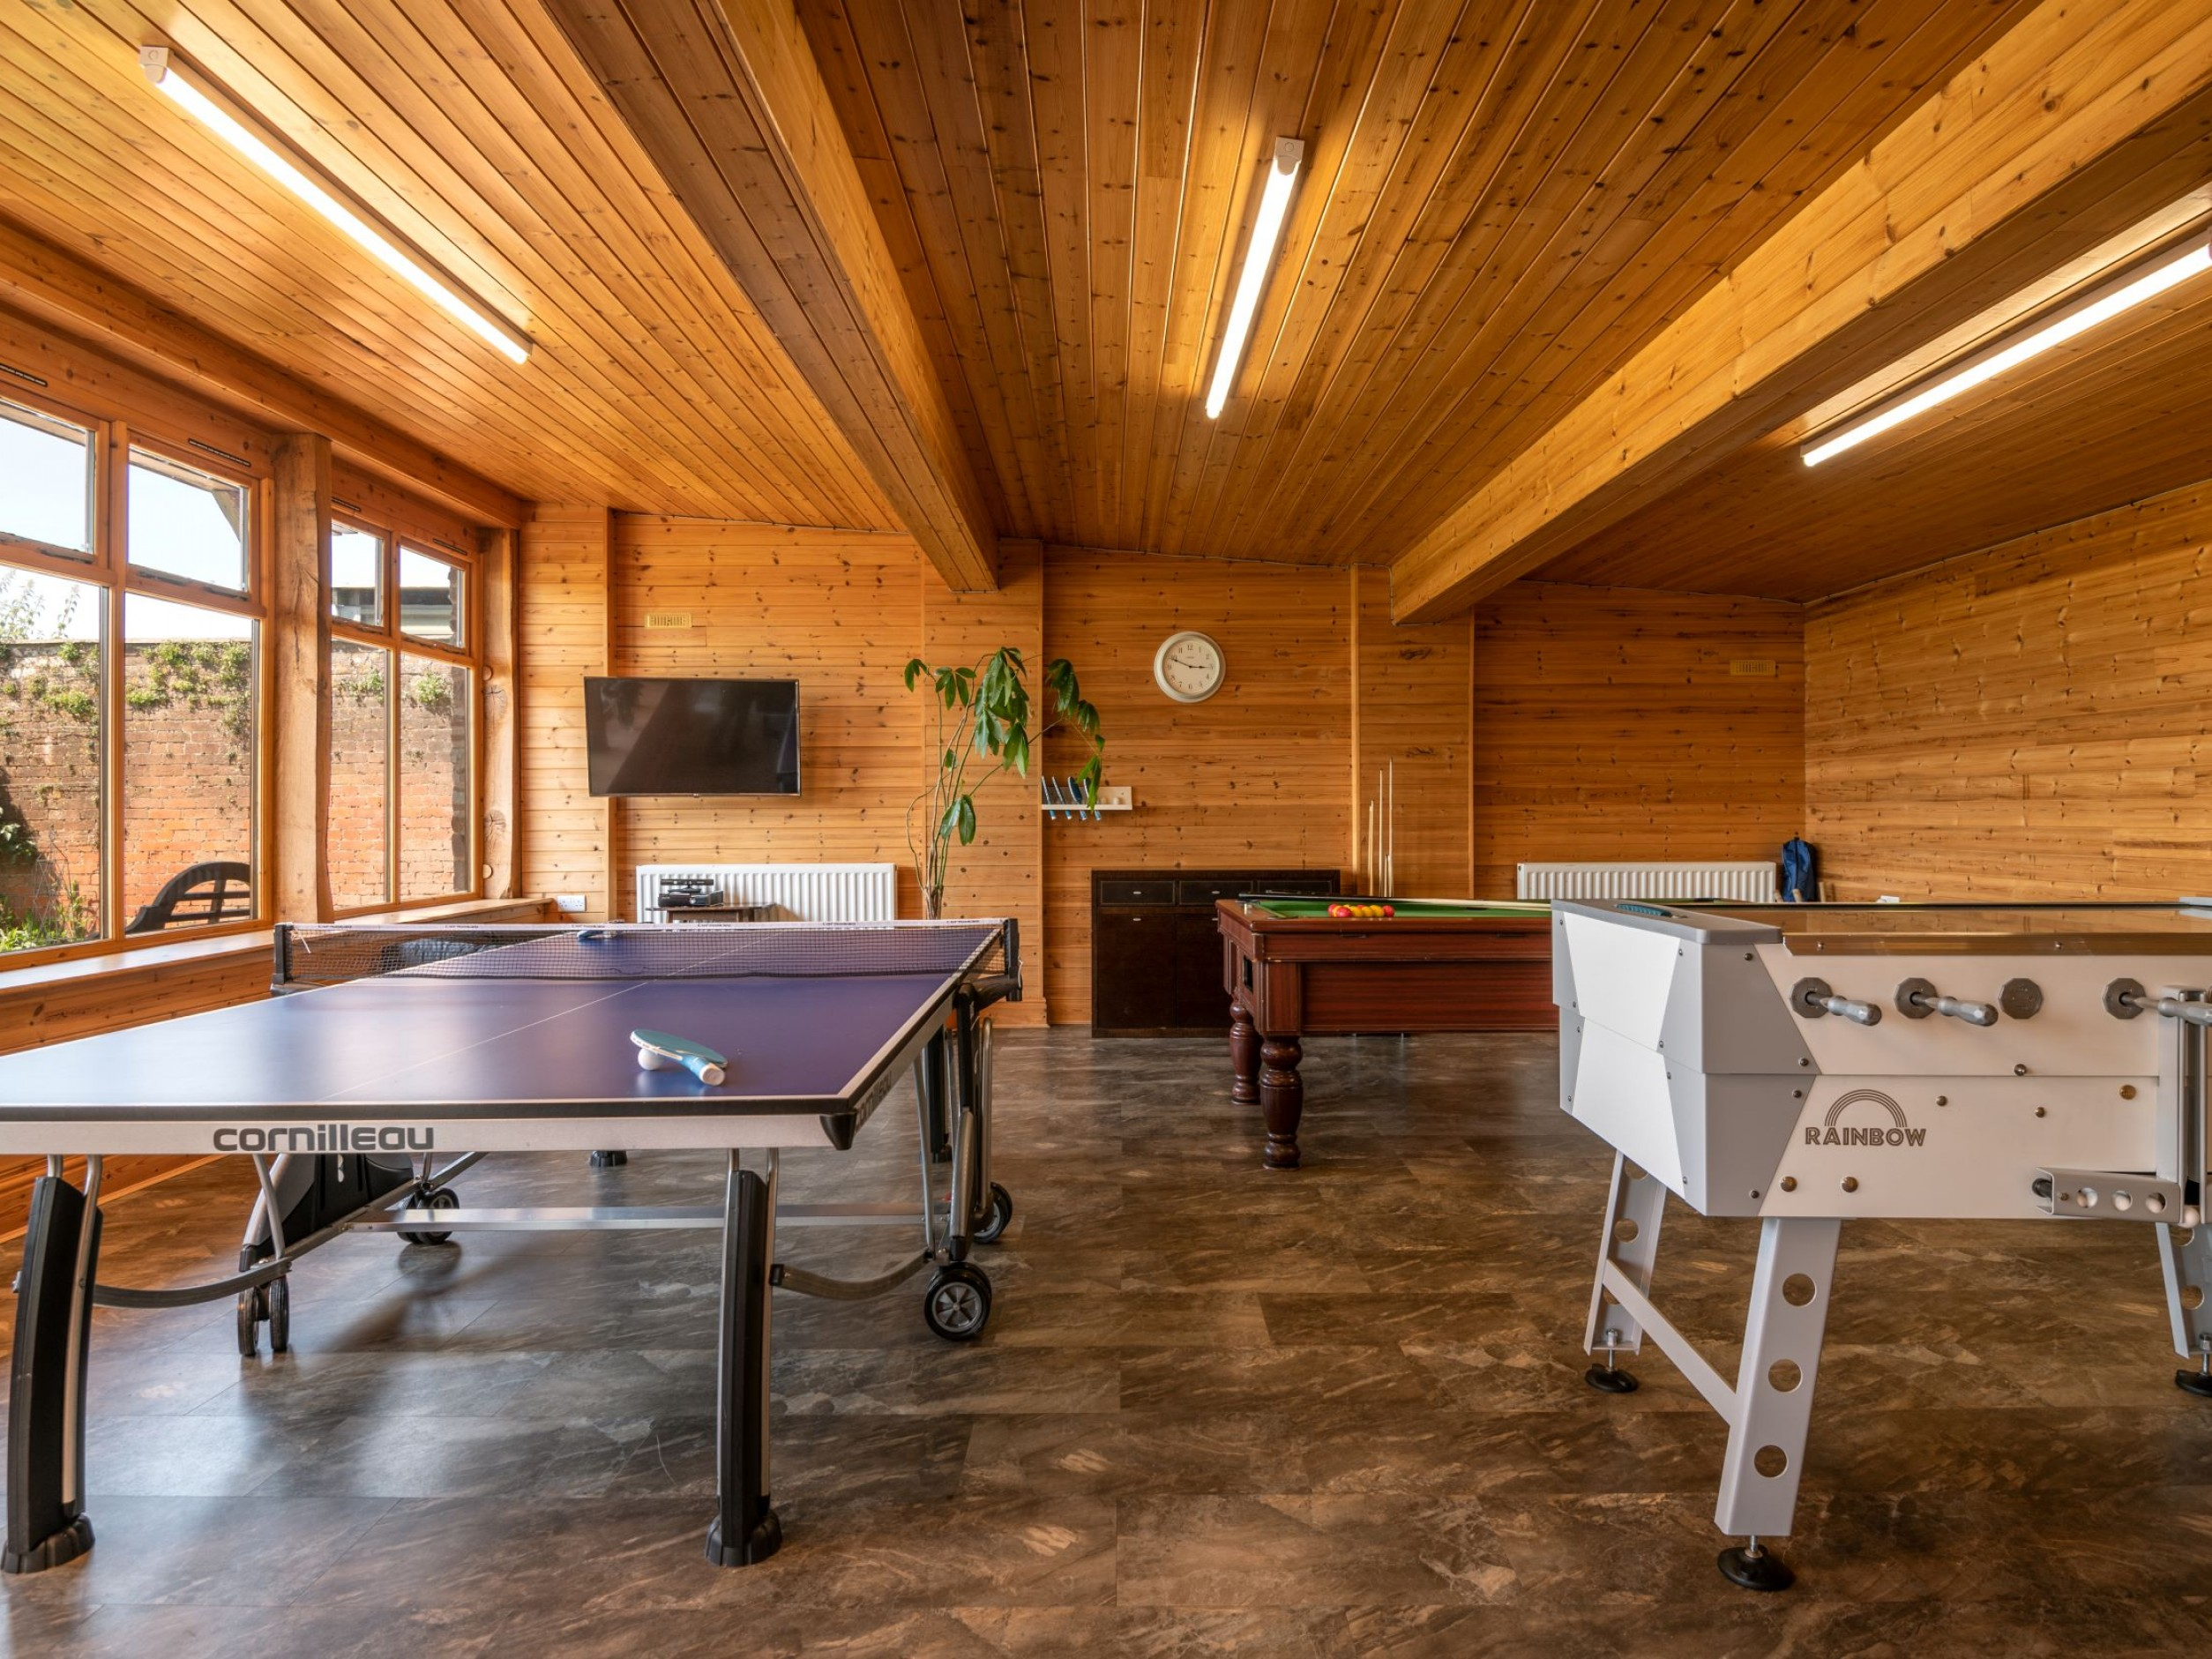 Games Room - table tennis, table football and pool table